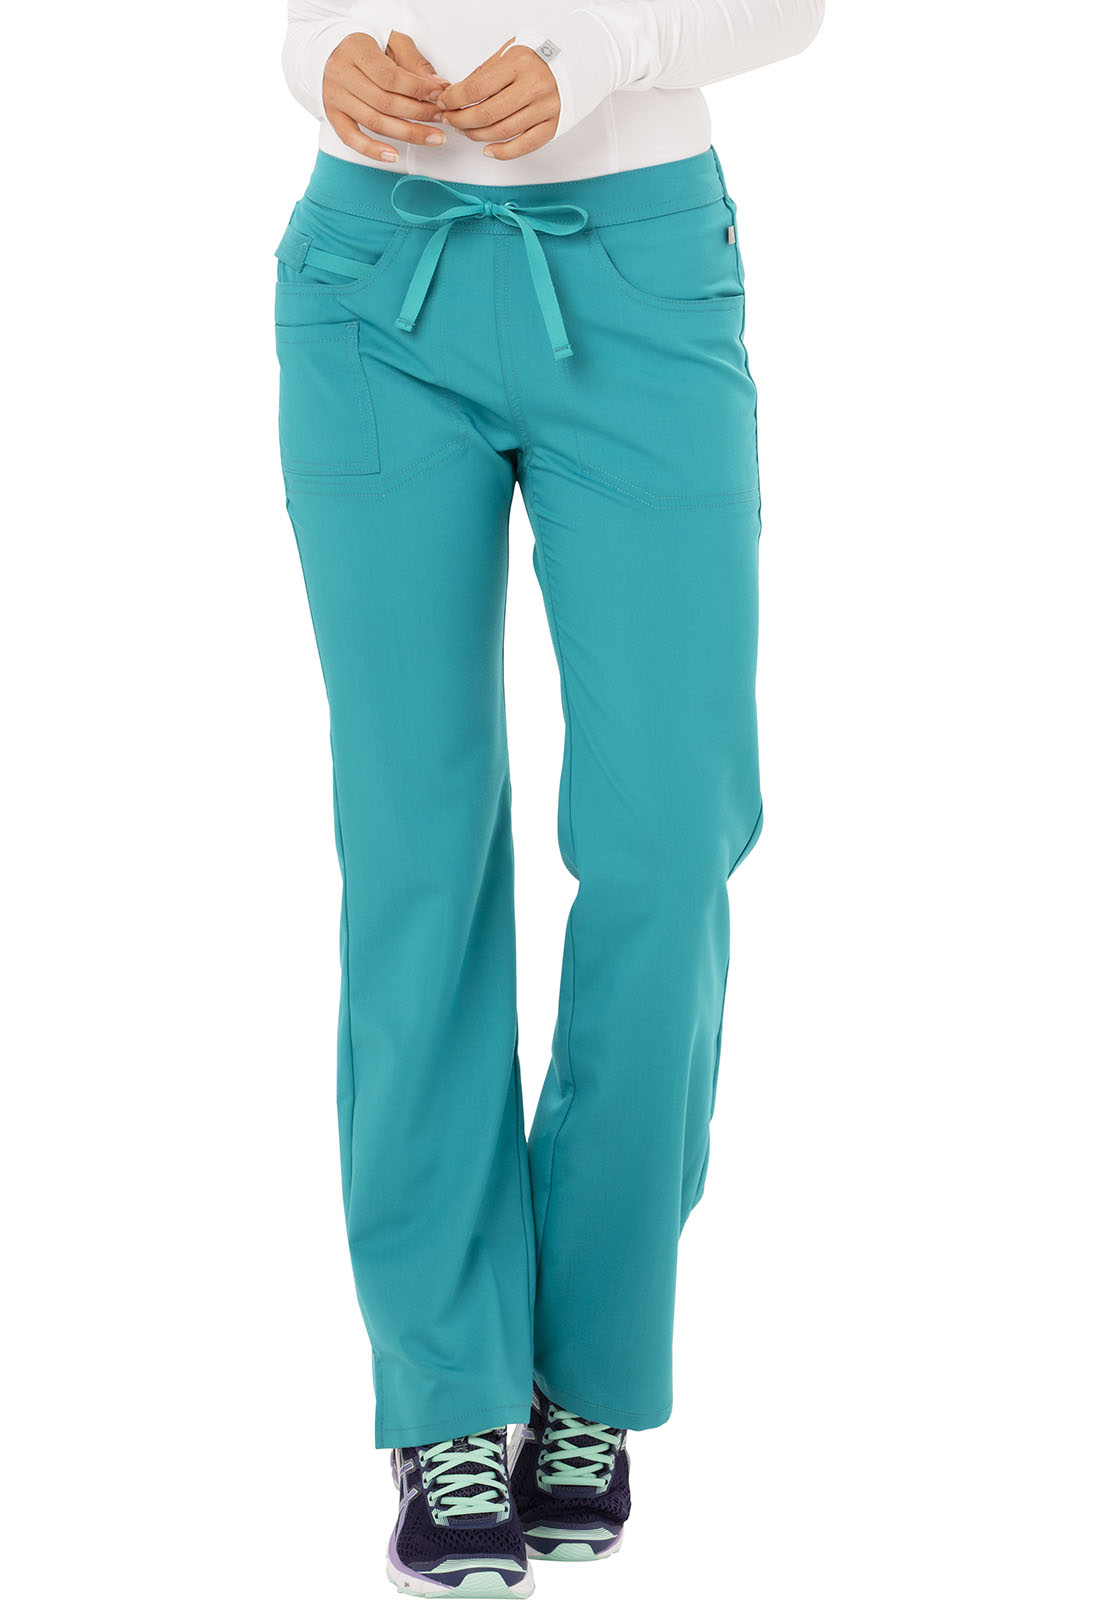 a027f8cbb18 Code Happy Cloud Nine Mid Rise Moderate Flare Leg Pant in Teal Blue ...